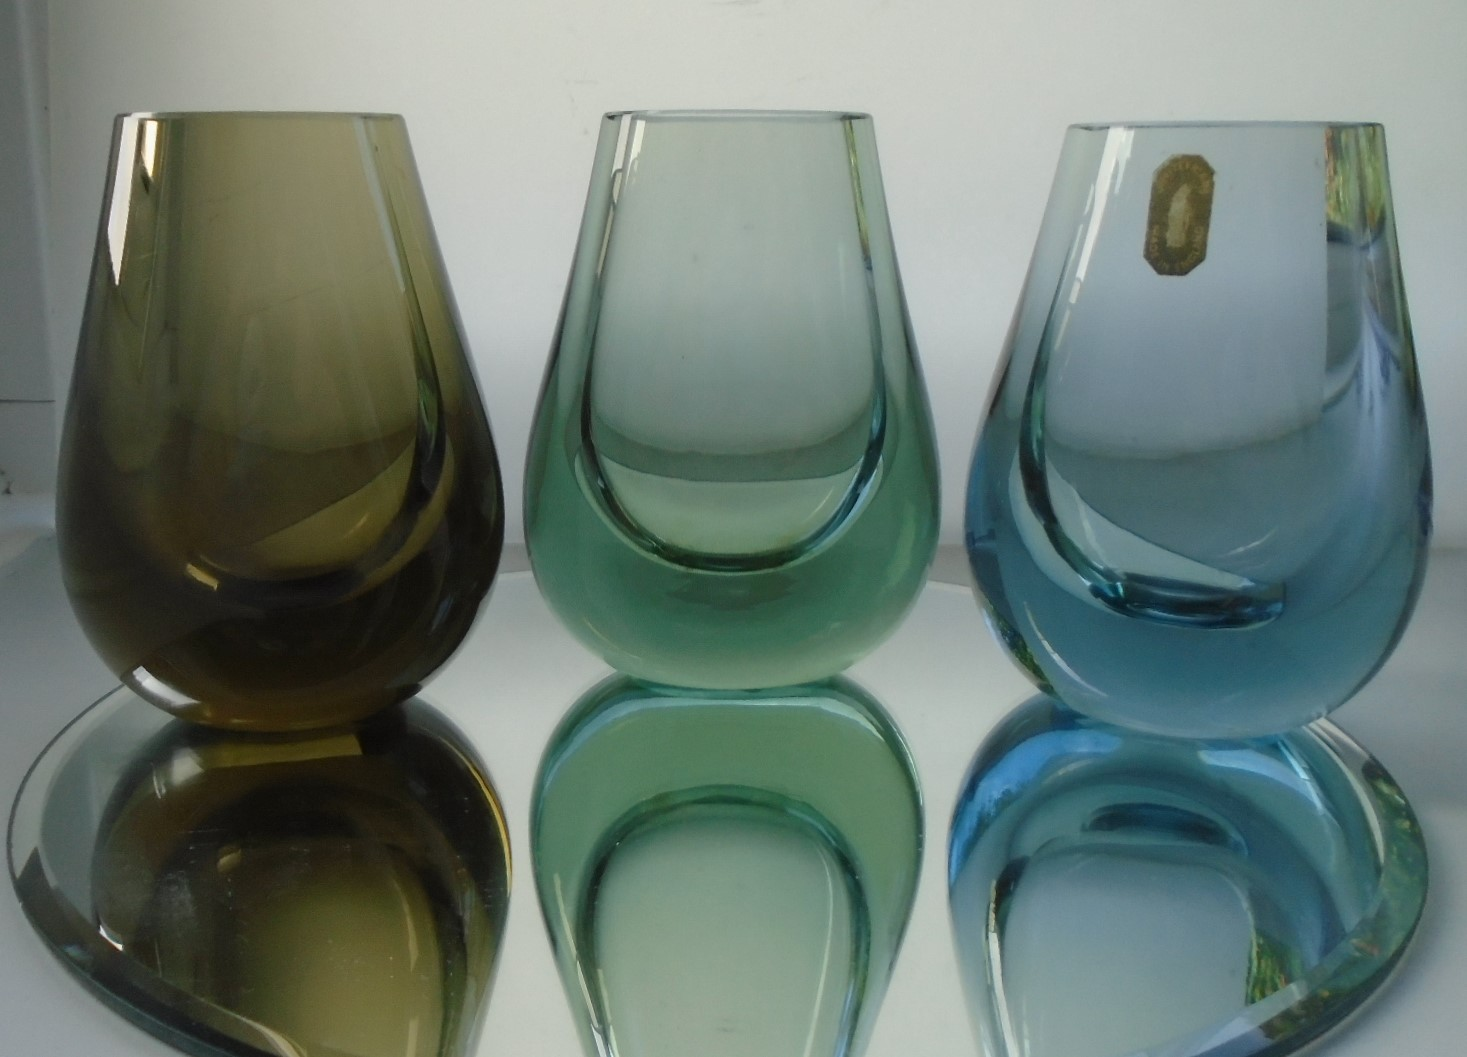 3 Vintage Geoffrey Baxter 60s and 70s Whitefriars Vases of similar design and shape.